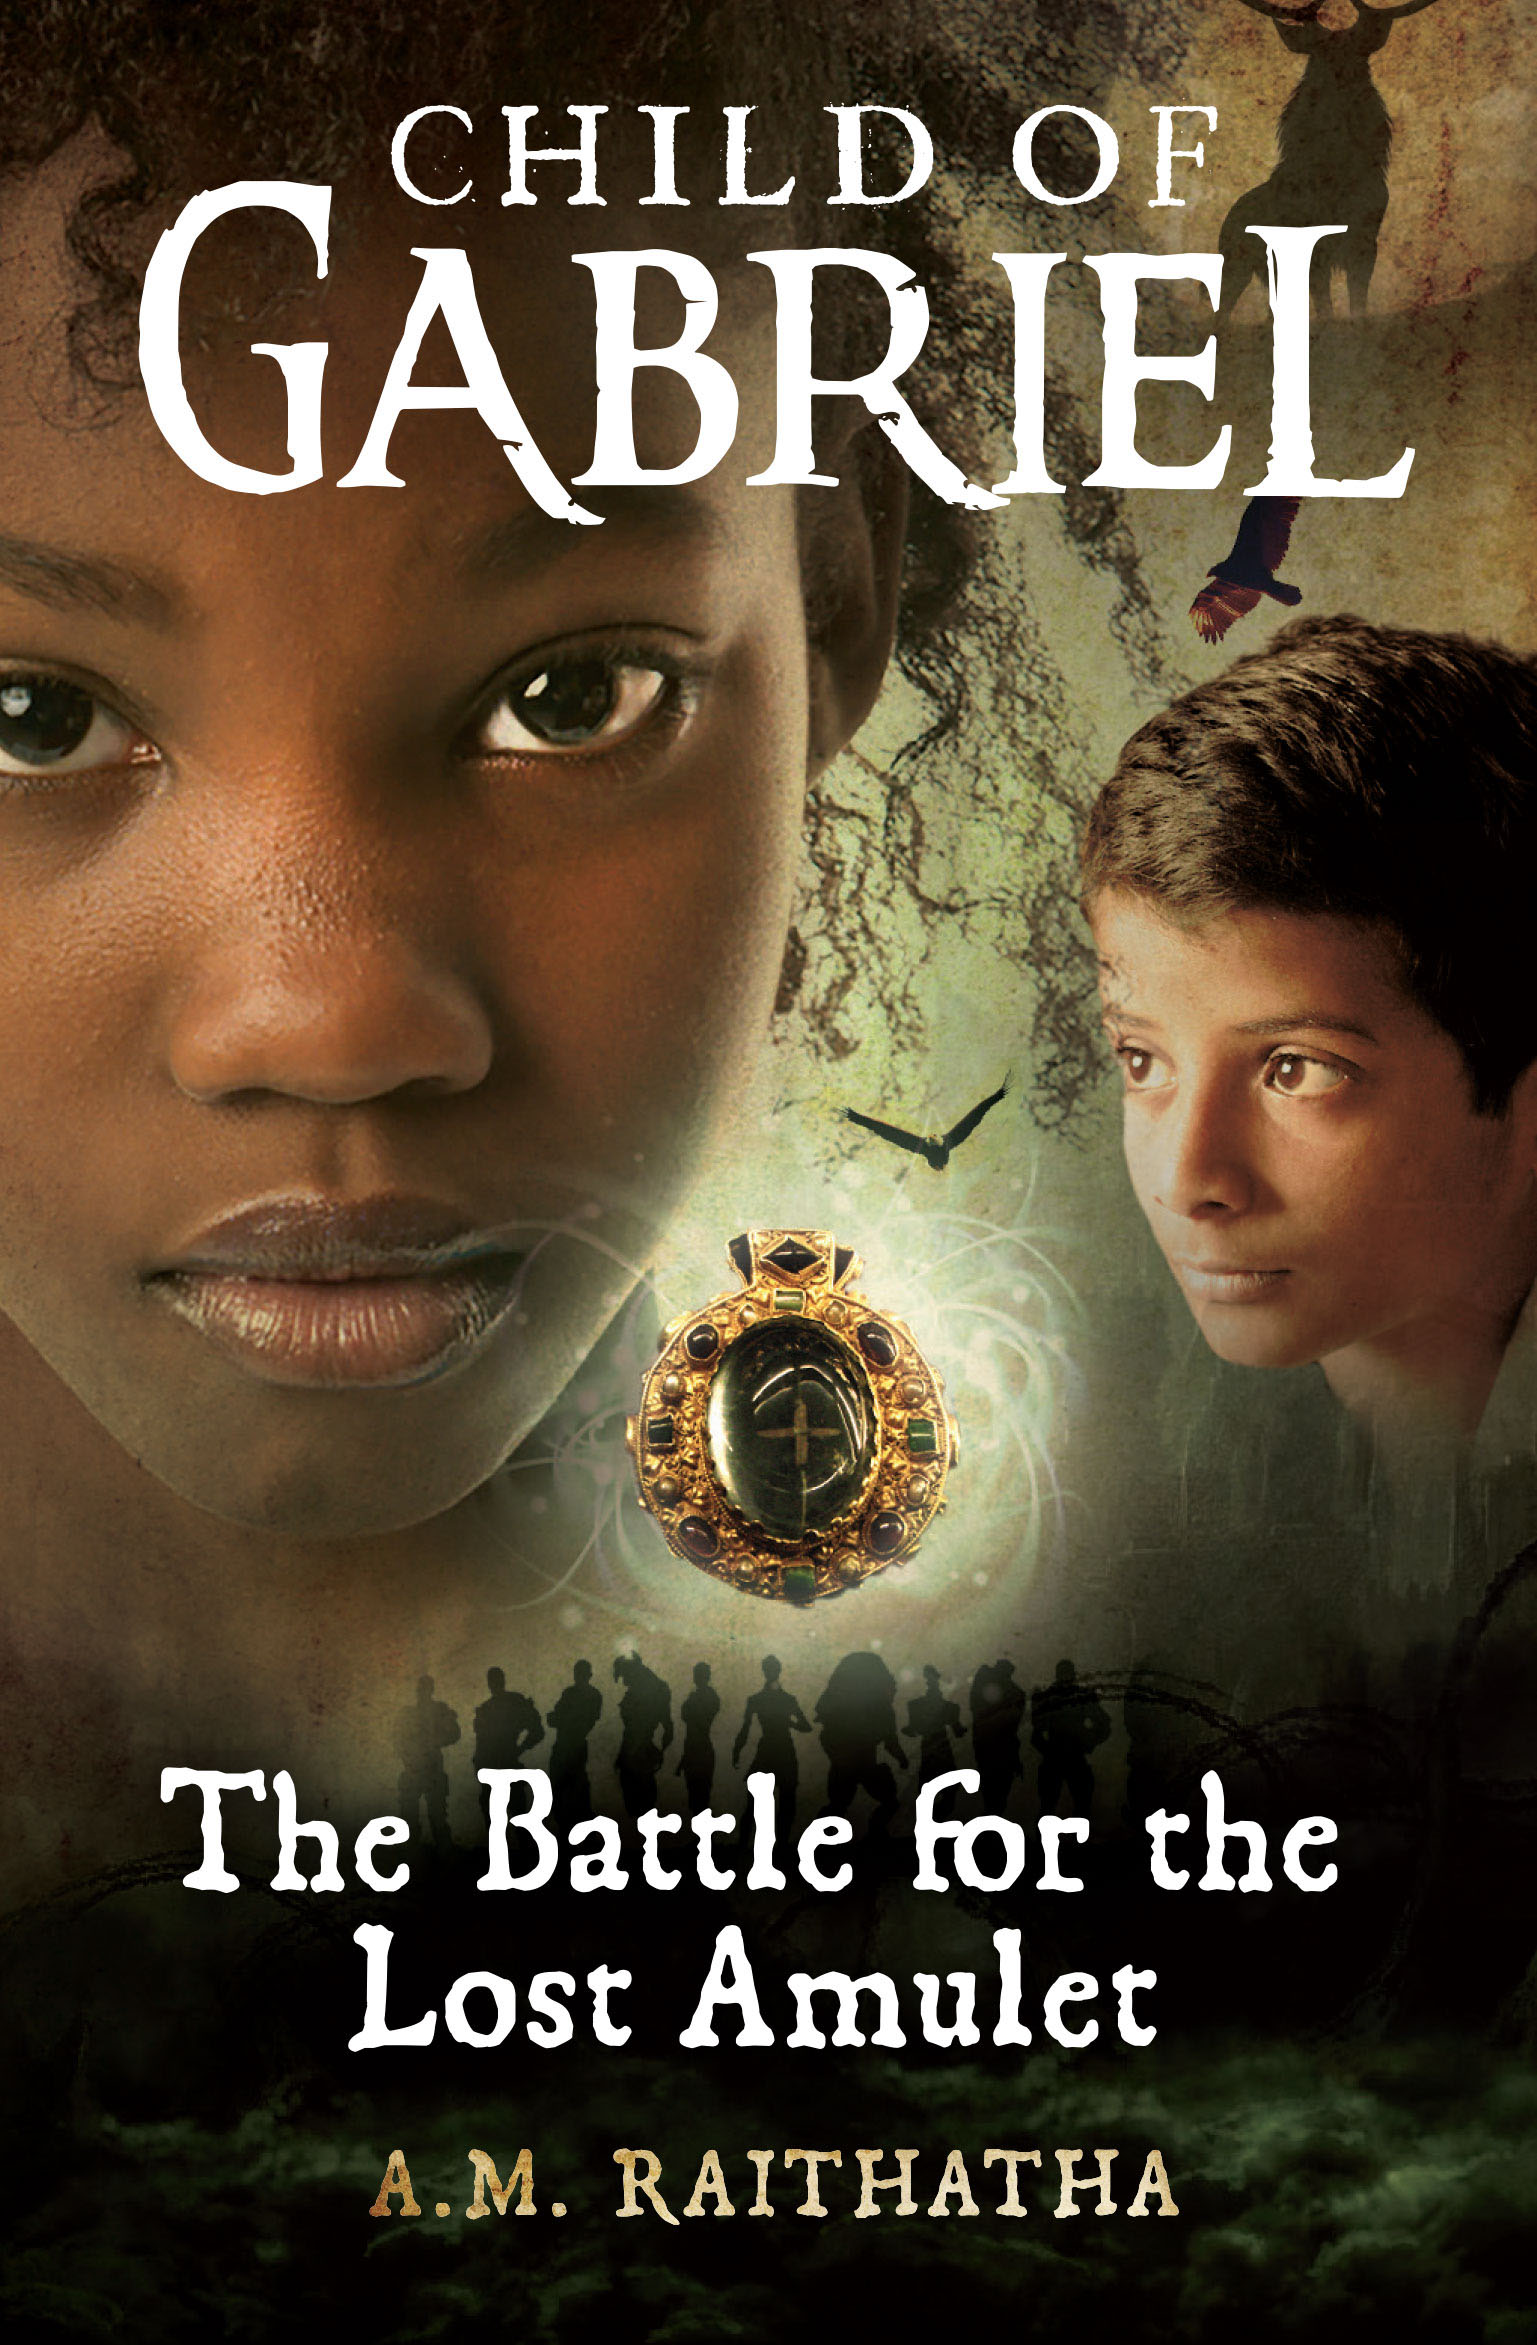 The Battle for the Lost Amulet